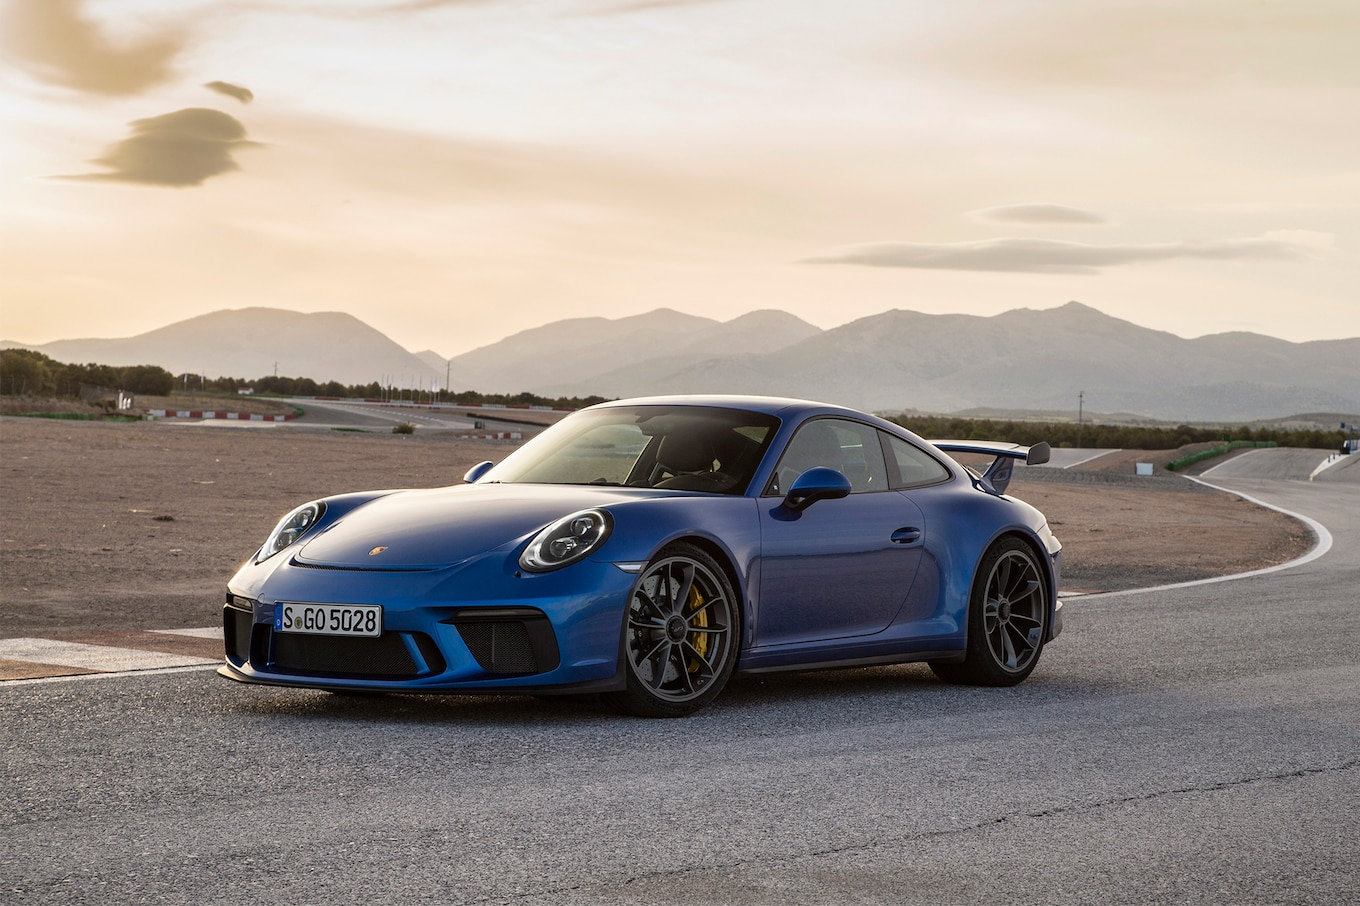 2018 Porsche 911 Gt3 First Drive Review As You Like It